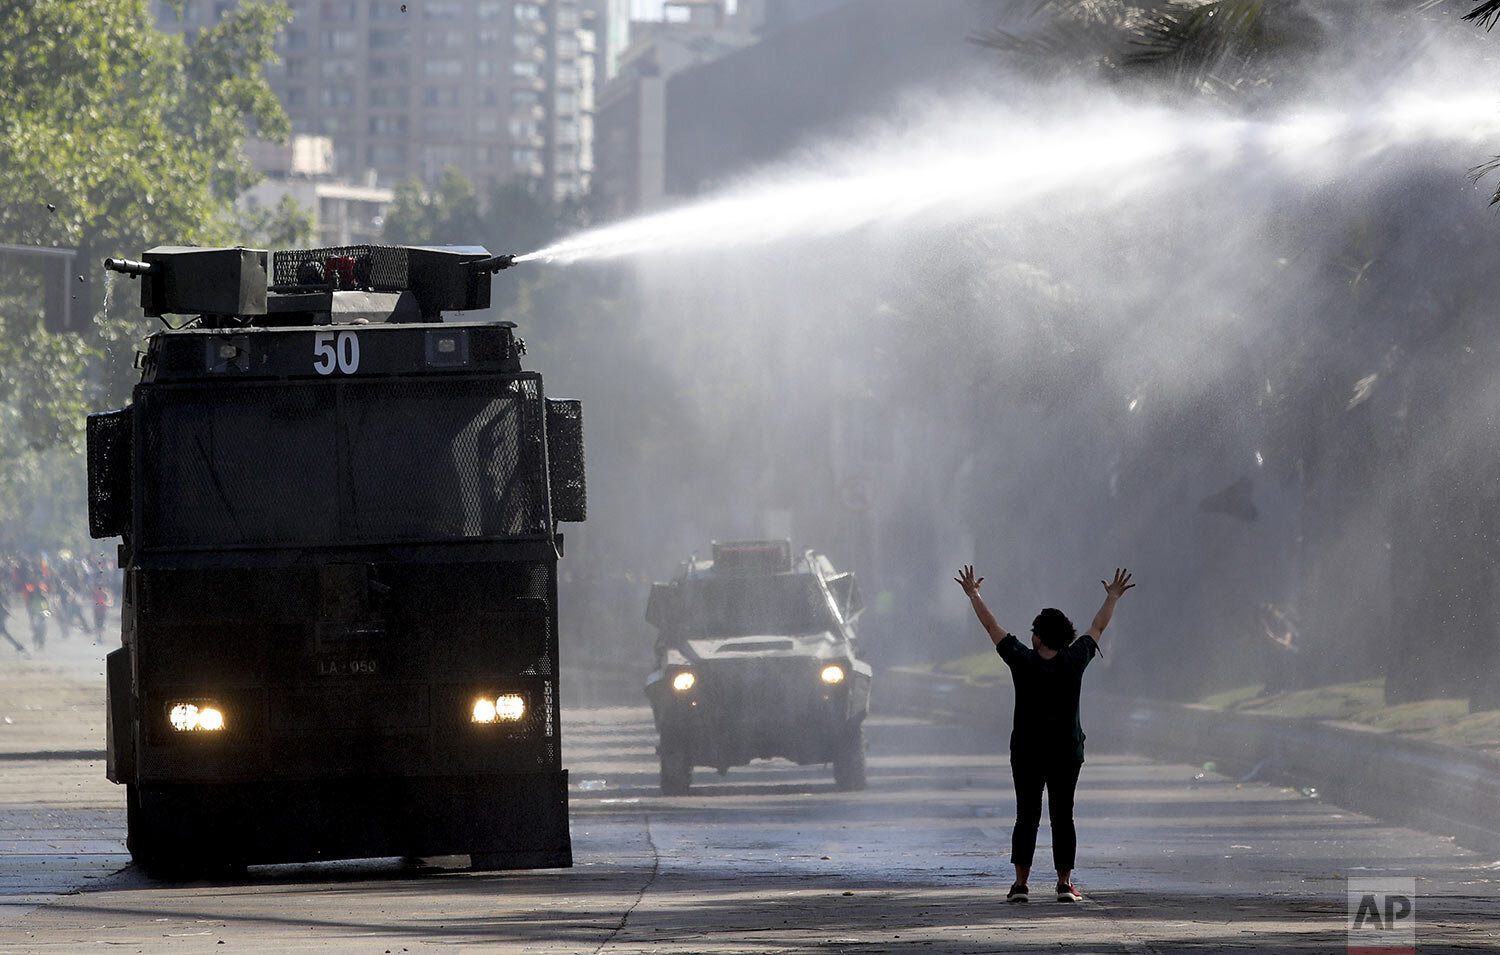 """A protester holds her hands up toward a police truck spraying a water canon at students and union members marching in Santiago, Chile, Monday, Oct. 21, 2019. Protesters defied an emergency decree and confronted police in Chile's capital on Monday, continuing disturbances that have left fatalities and led the president to say the country is """"at war."""" (AP Photo/Miguel Arenas)"""